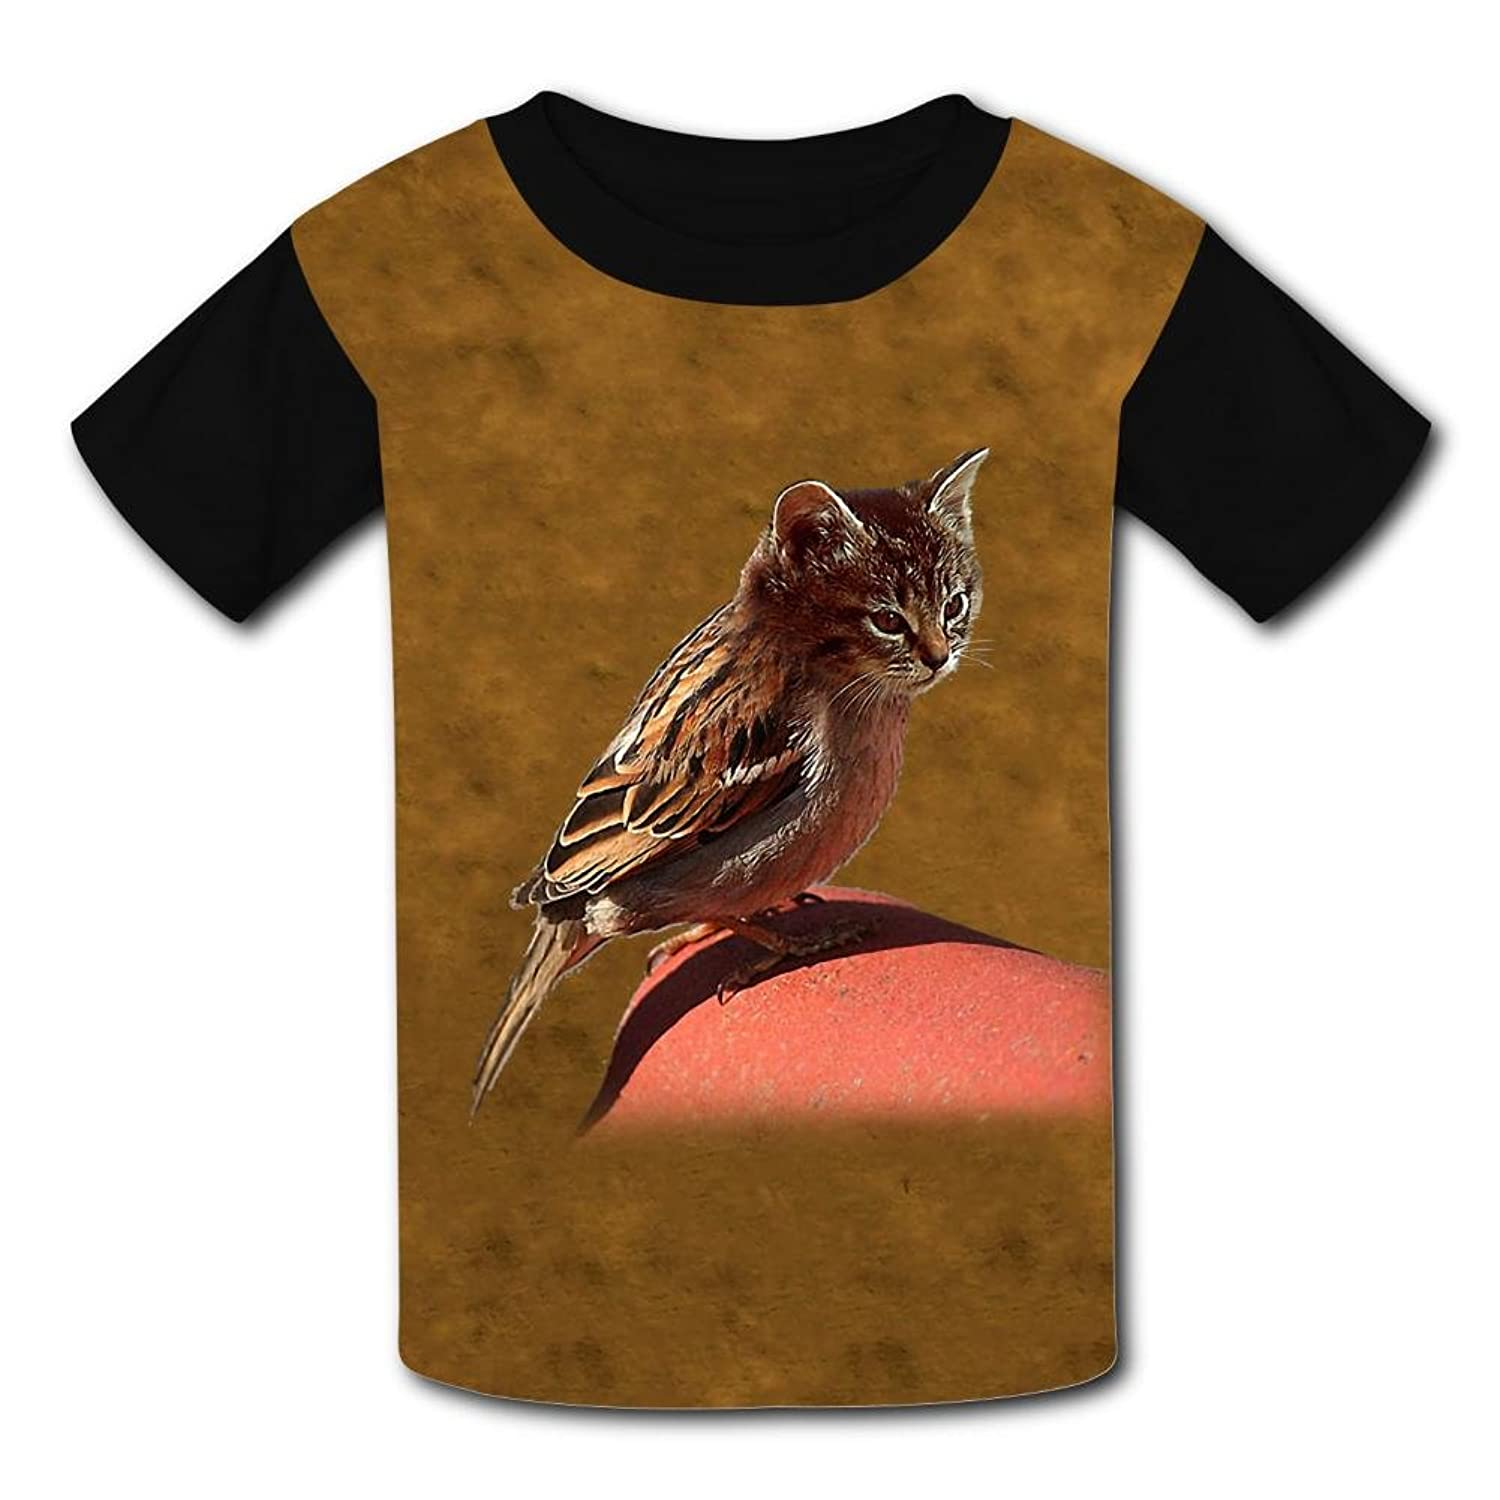 Cat and Bird Light Weight Short Sleeve 2017 The Latest Version for Kidsfree Postage for sale